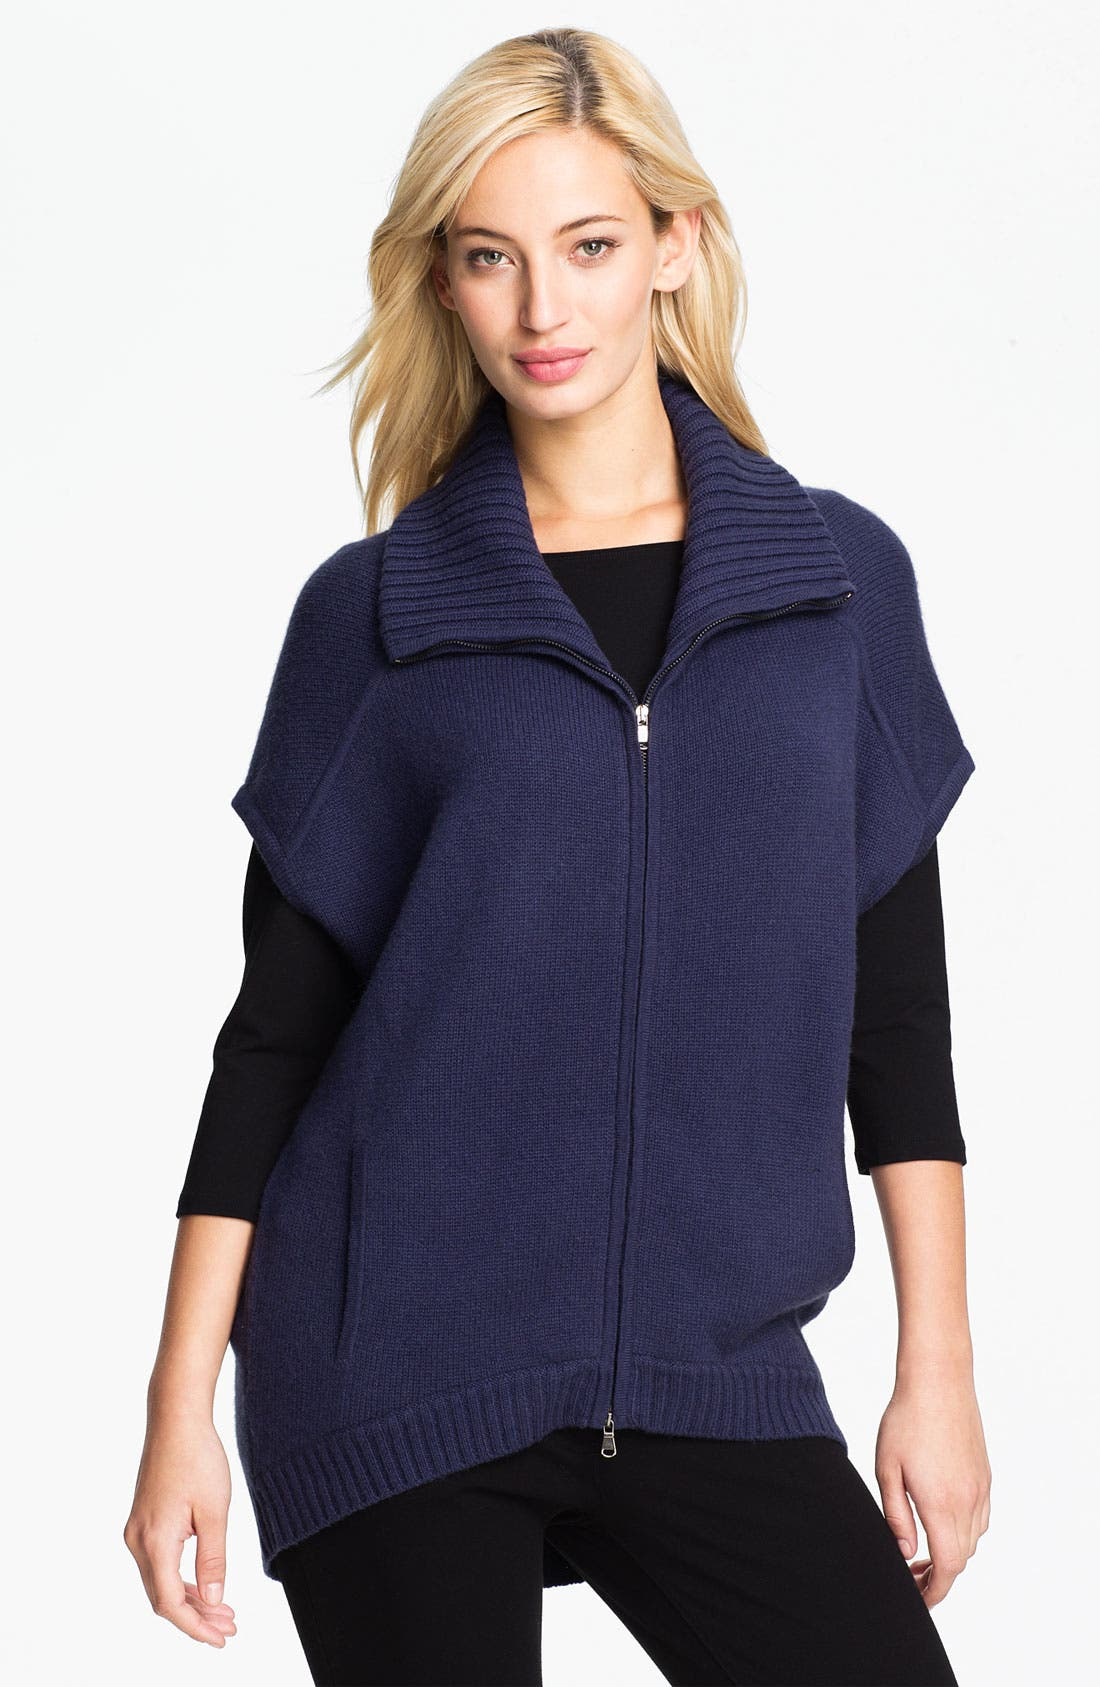 Main Image - Christopher Fischer 'Hyacinth' Cashmere Sweater Jacket (Online Exclusive)